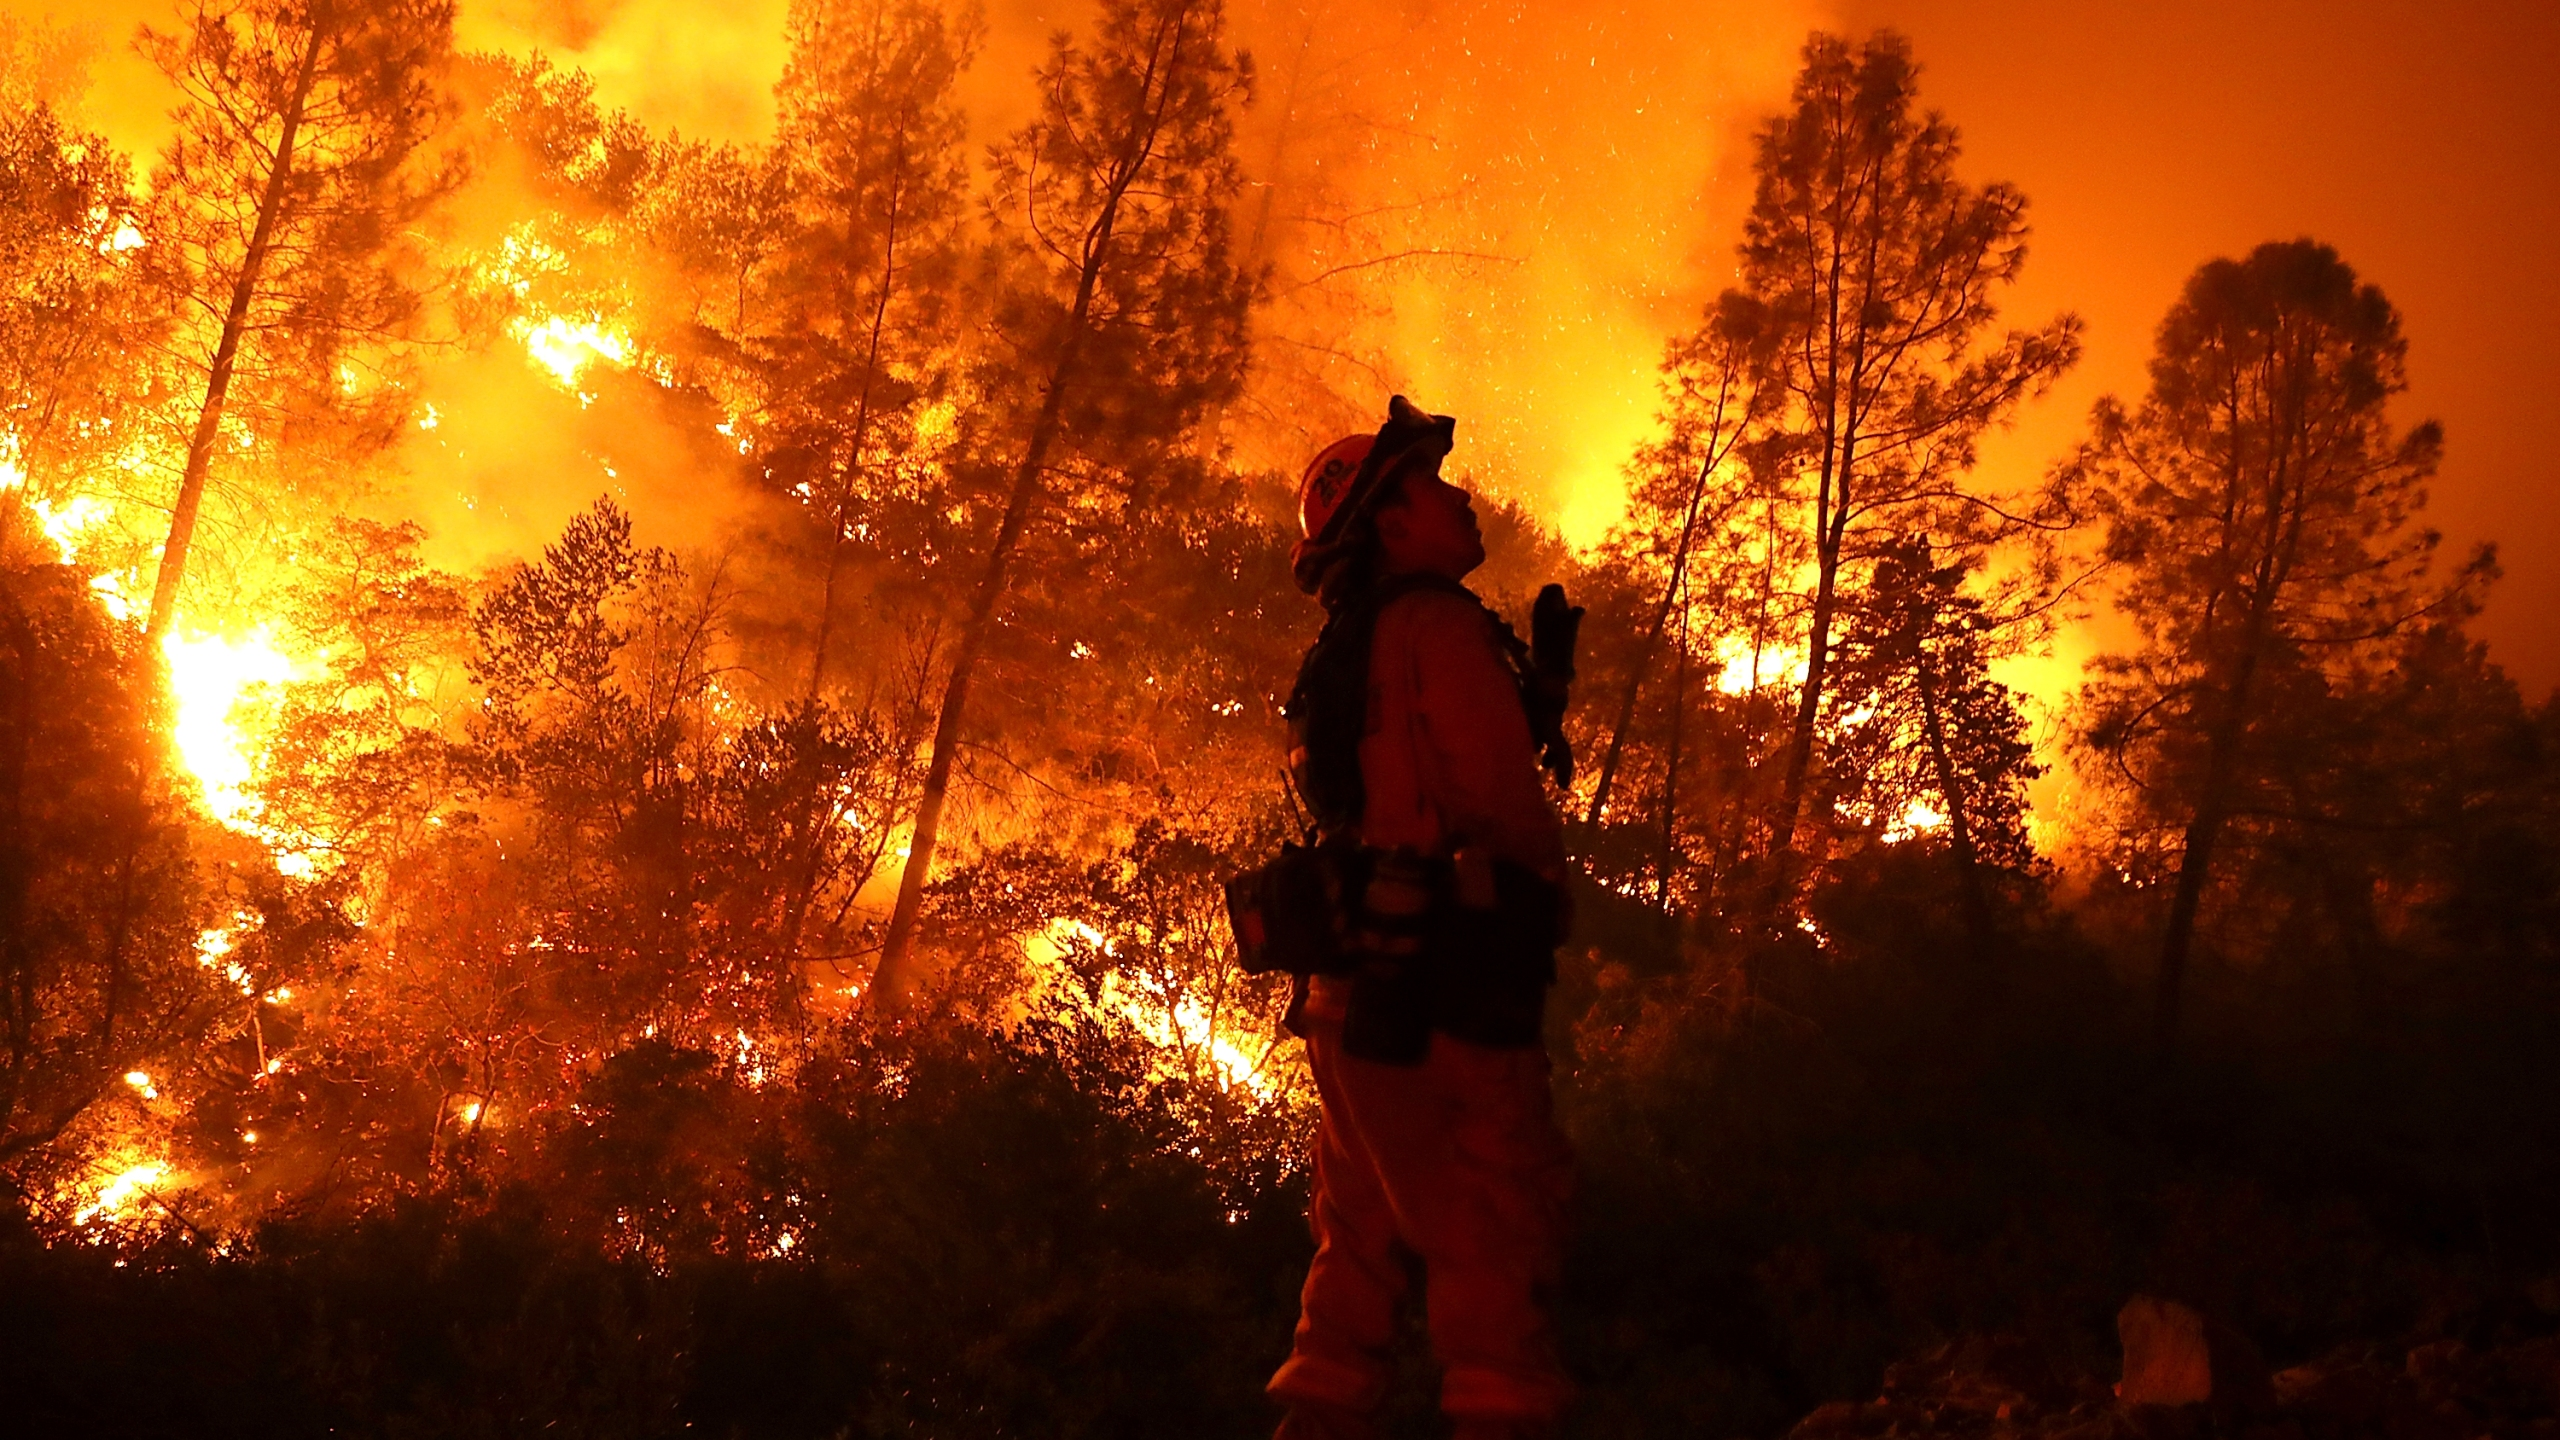 A firefighter monitors a back fire while battling the Medocino Complex Fire on August 7, 2018 near Lodoga. (Credit: Justin Sullivan/Getty Images)